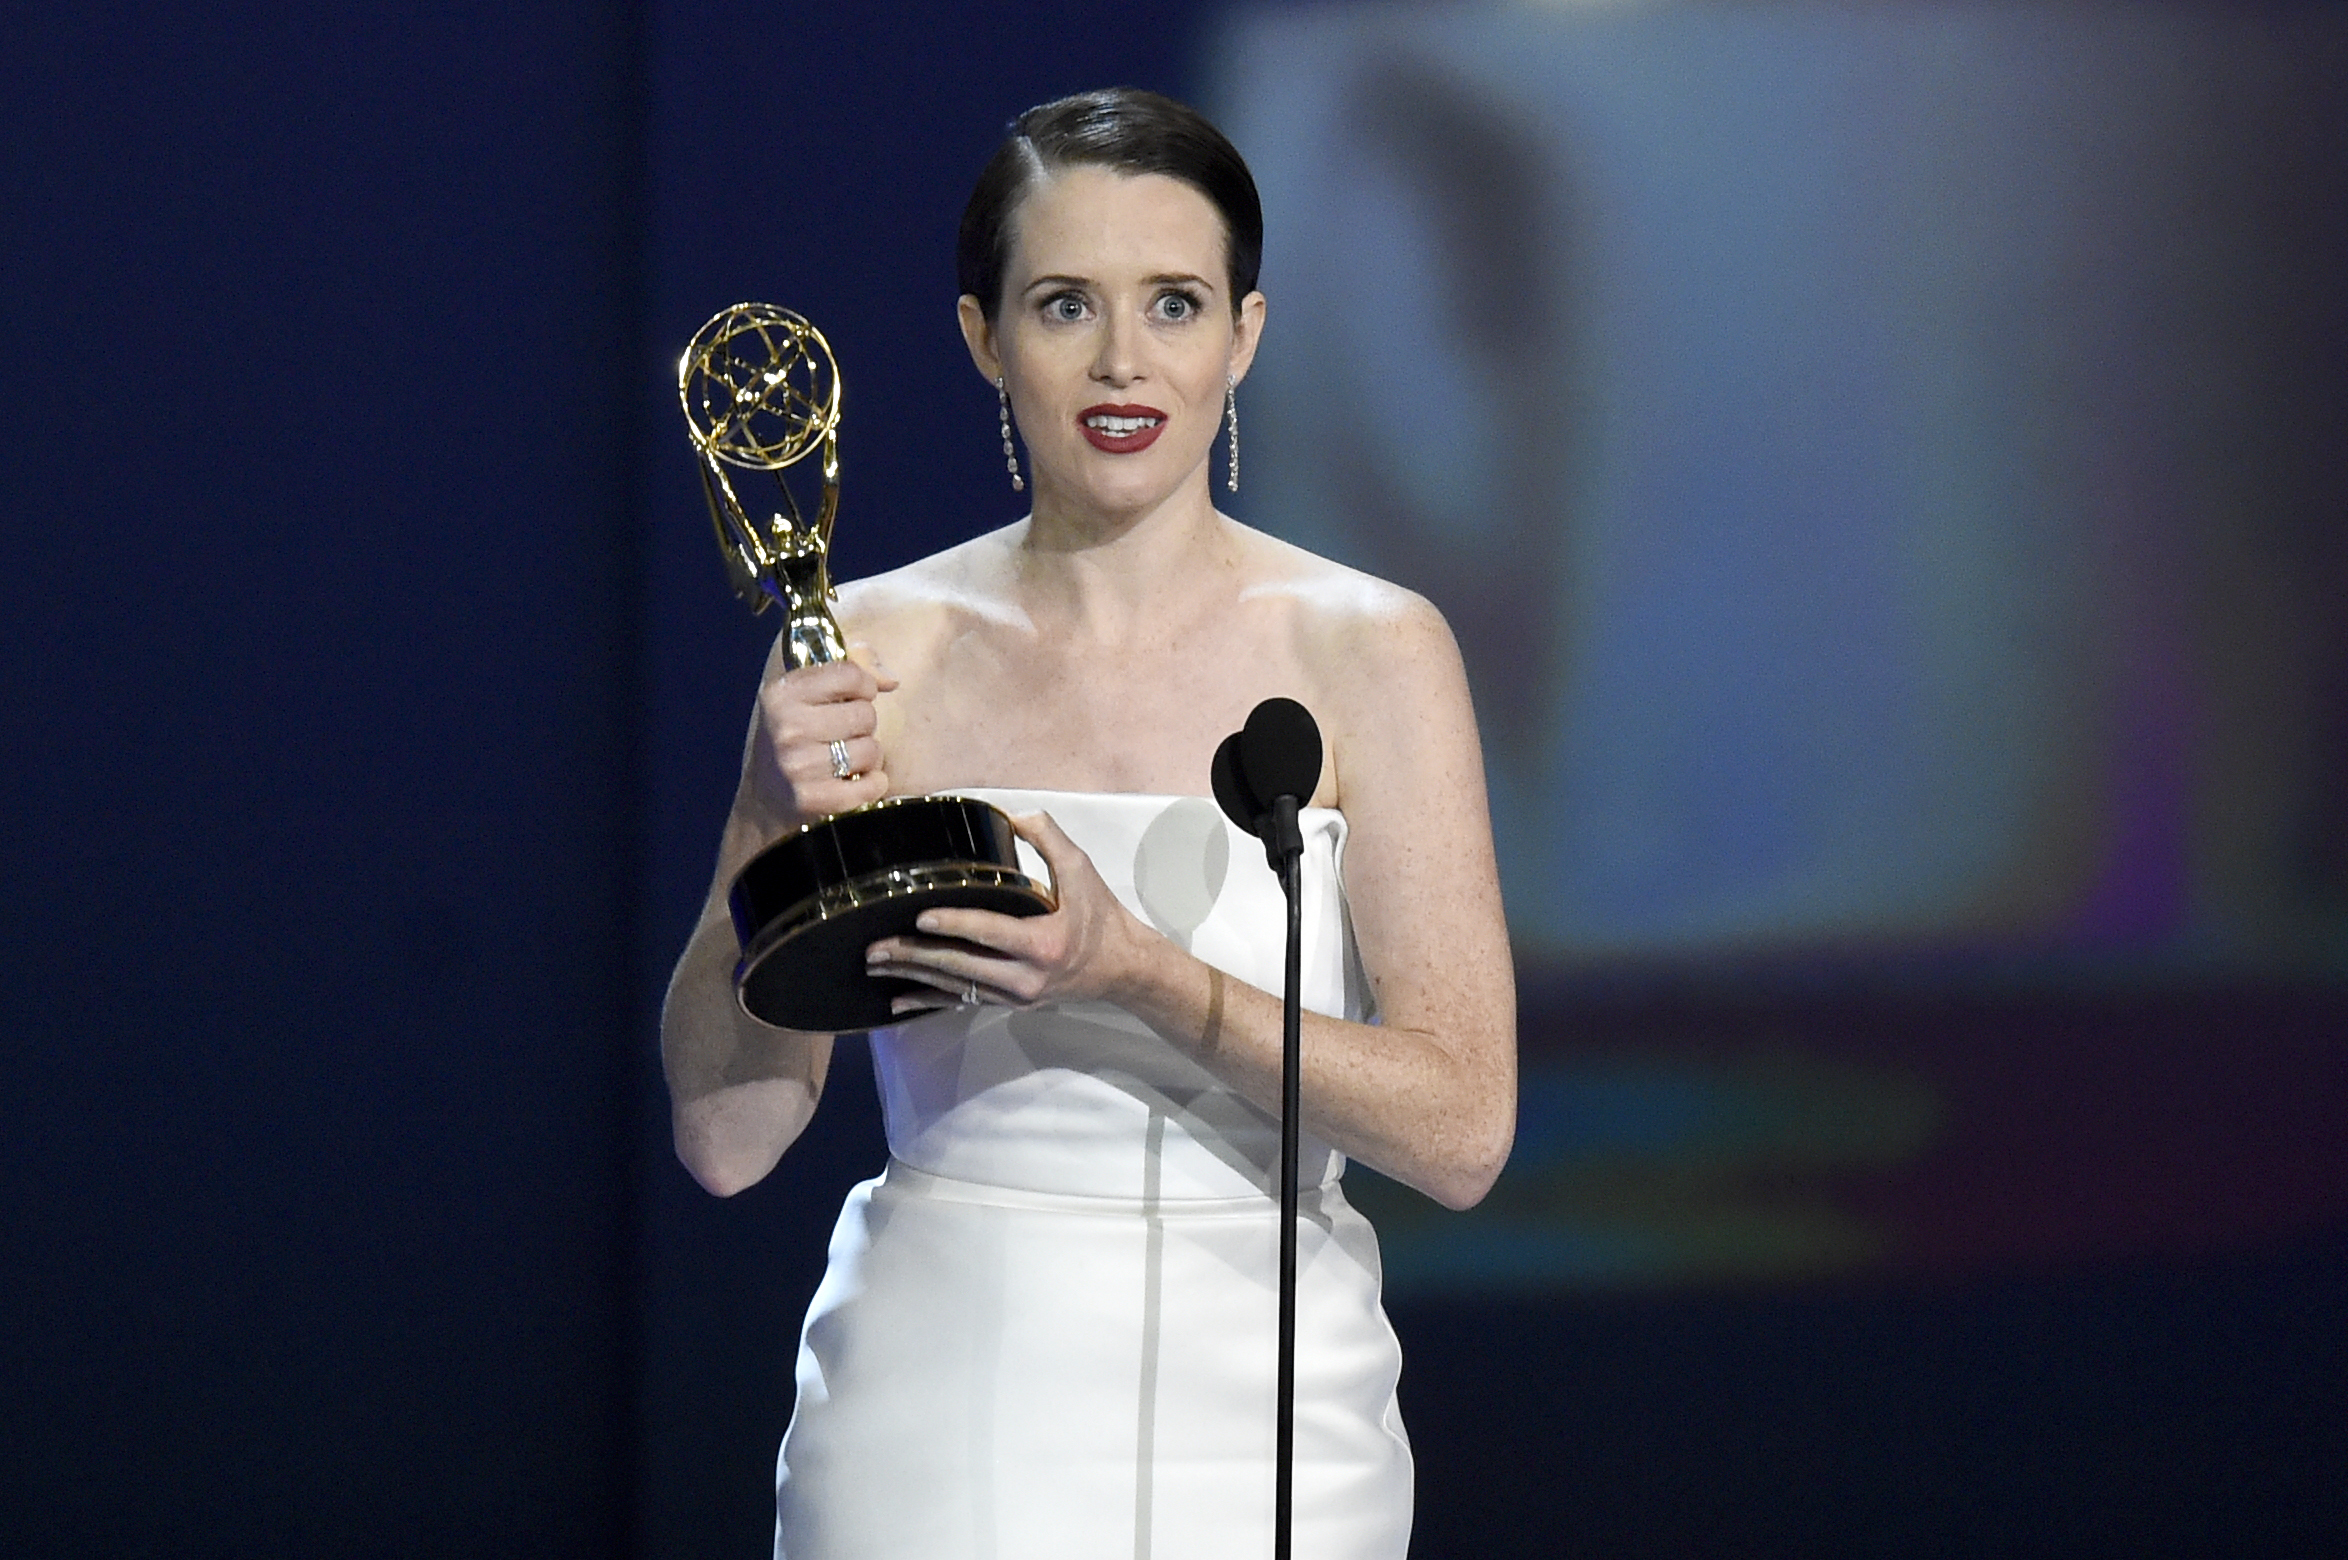 Outstanding Lead Actress in a Drama Series 2018 - Claire Foy as Queen Elizabeth II in The Crown